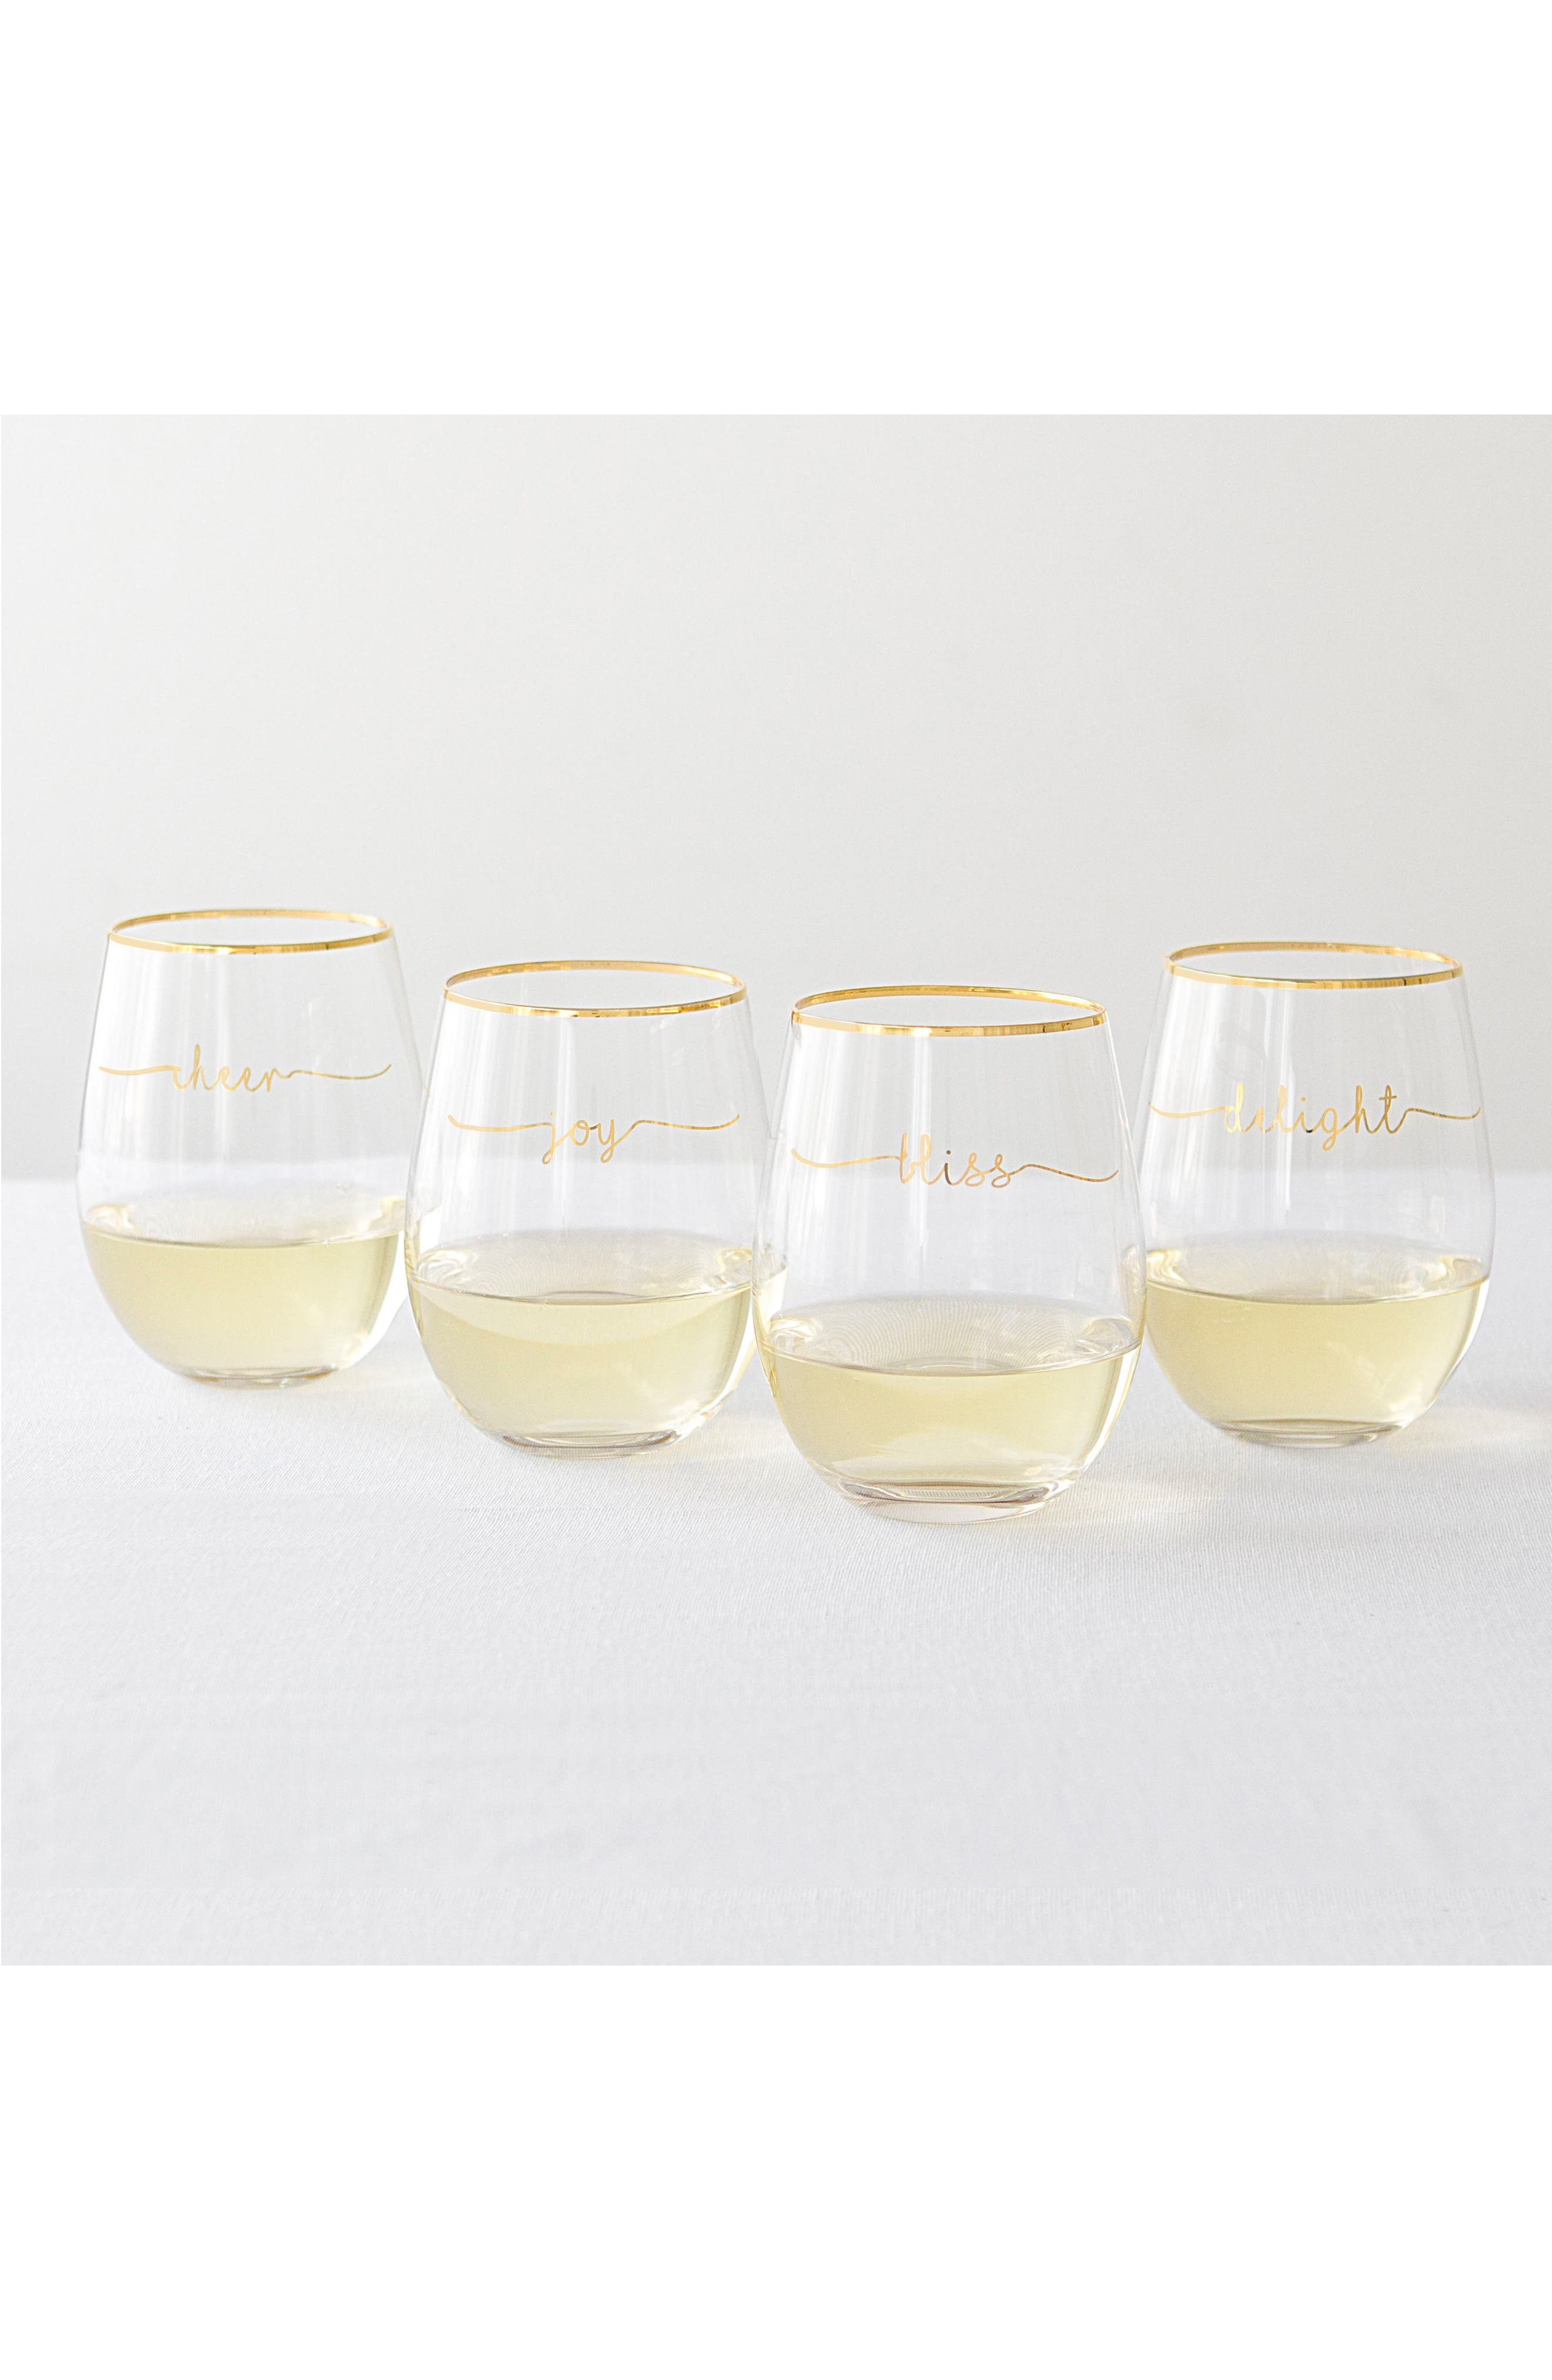 Bliss Set of 4 Stemless Wine Glasses,                             Main thumbnail 1, color,                             Gold